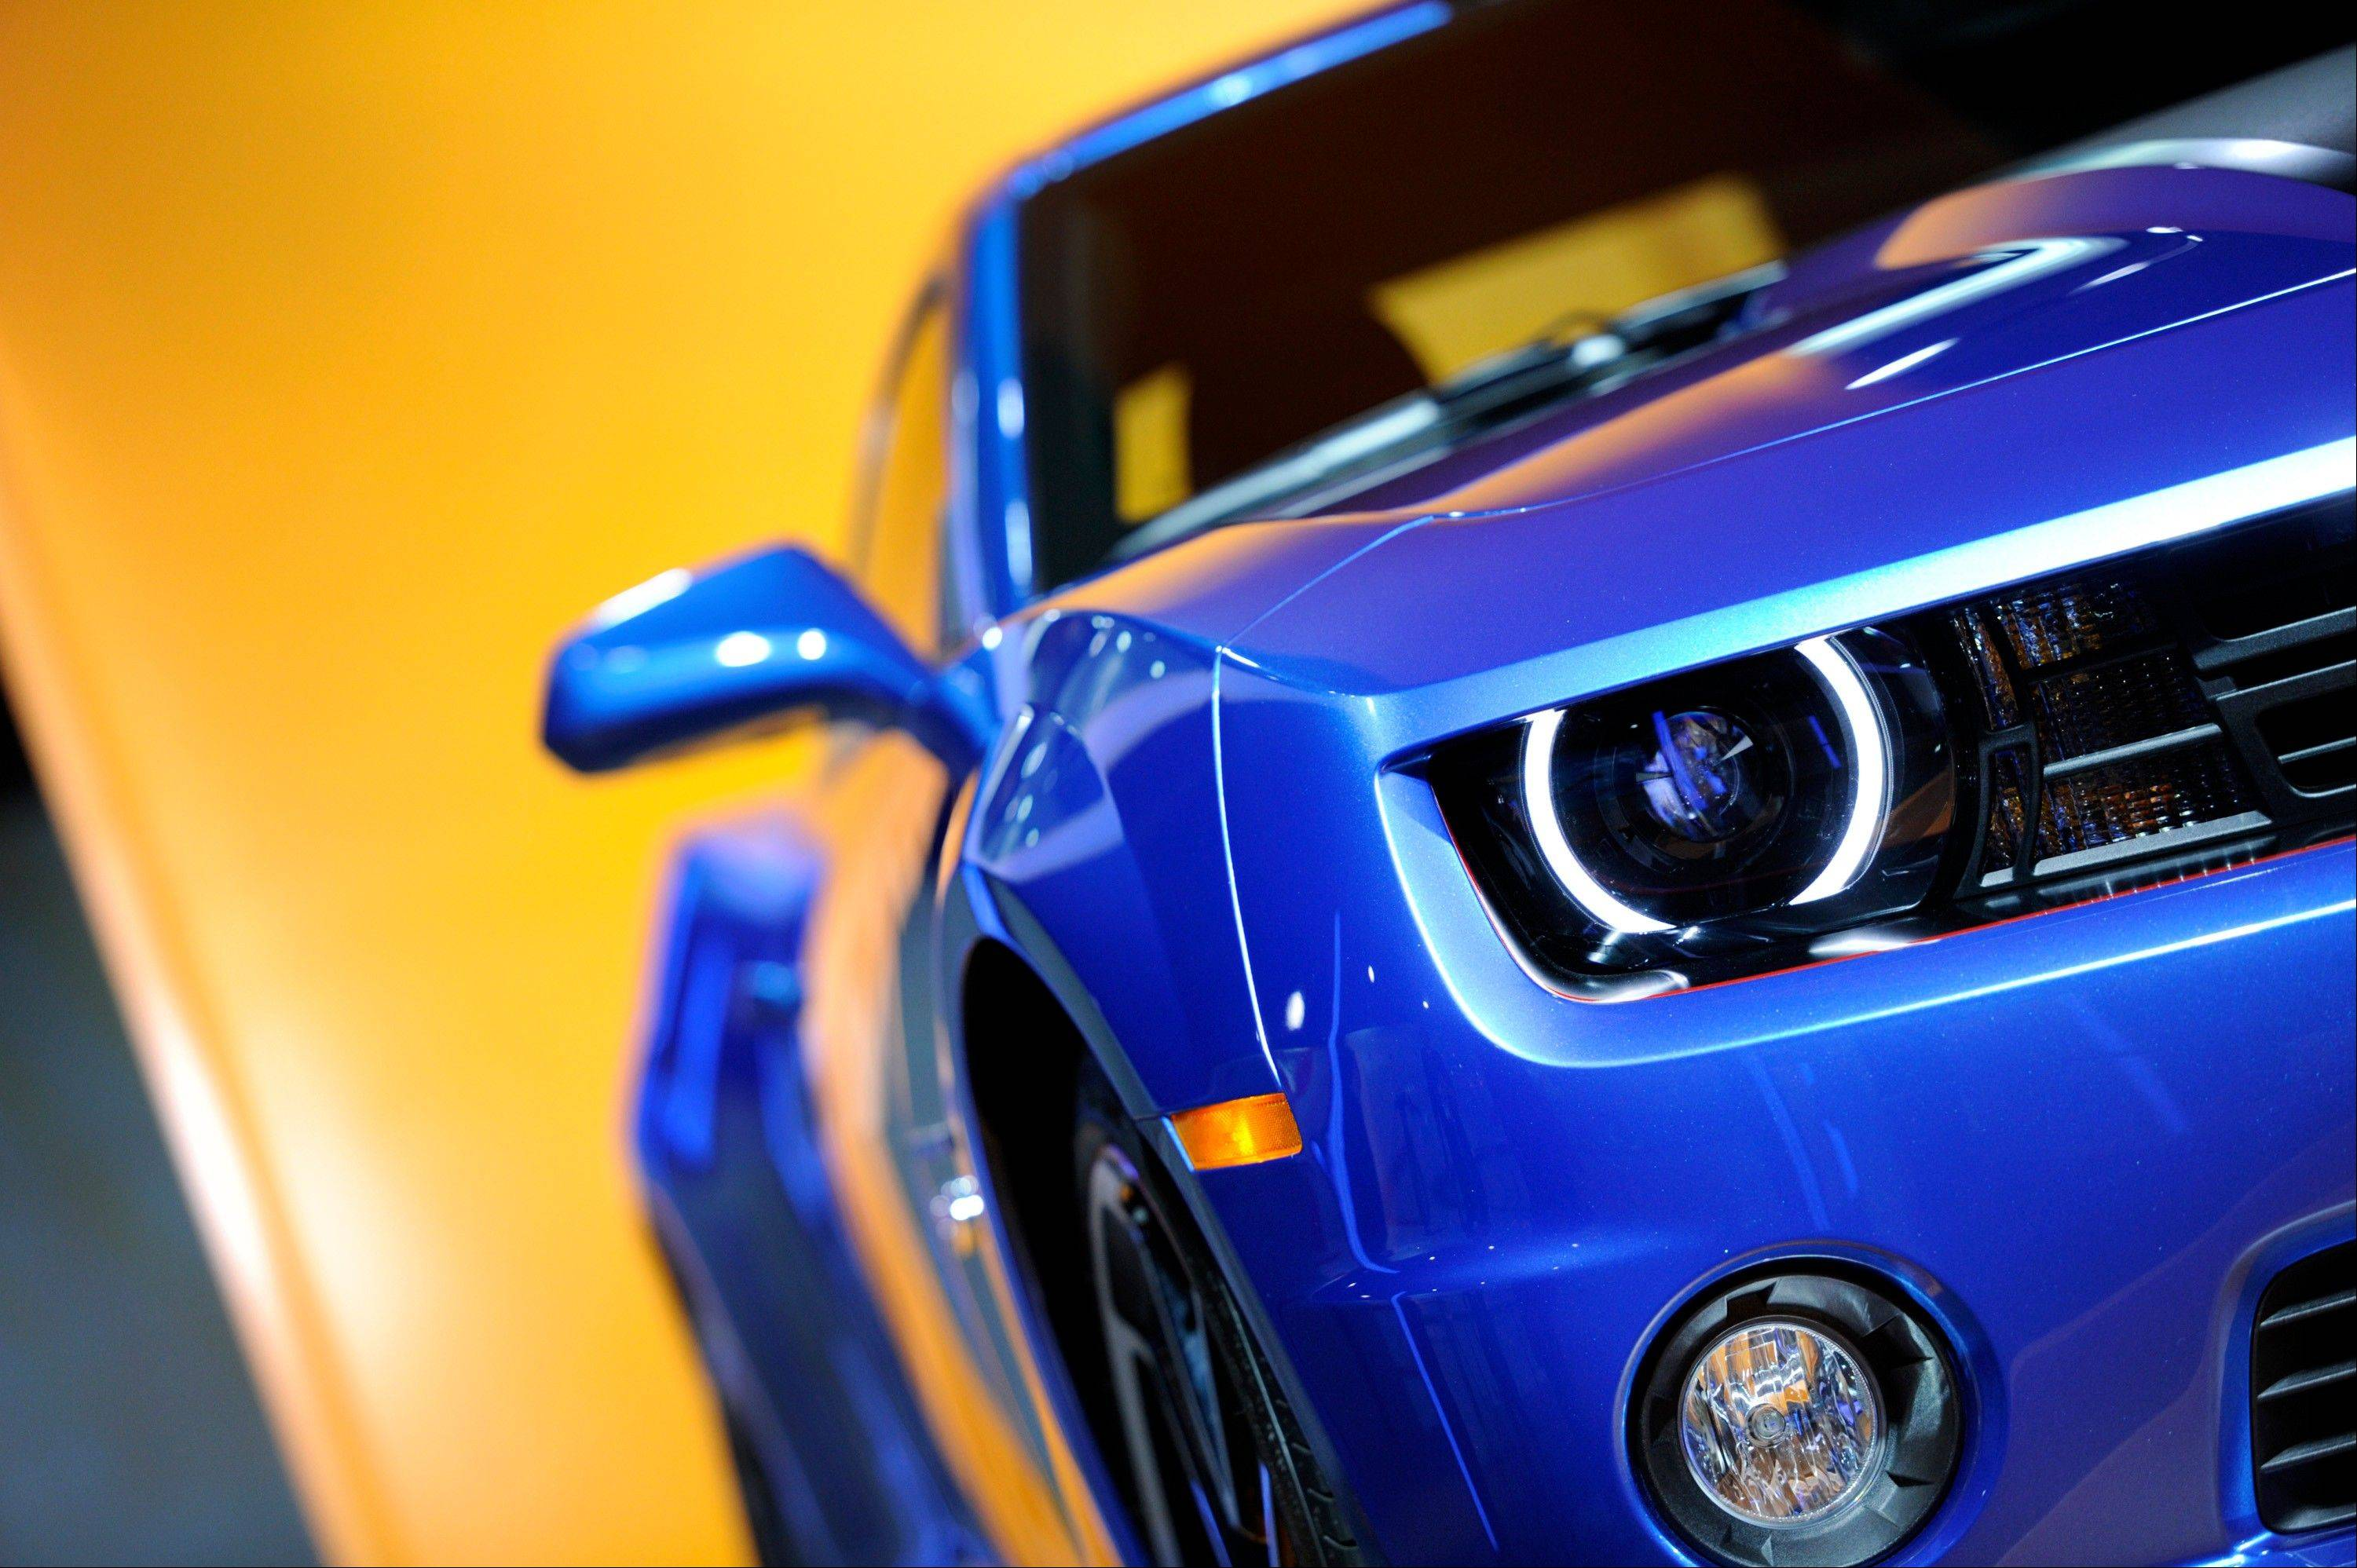 A headlight of the Chevrolet Camaro Hot Wheels edition vehicle is seen during the 2013 North American International Auto Show (NAIAS) in Detroit, Michigan, U.S., on Tuesday, Jan. 15, 2013.